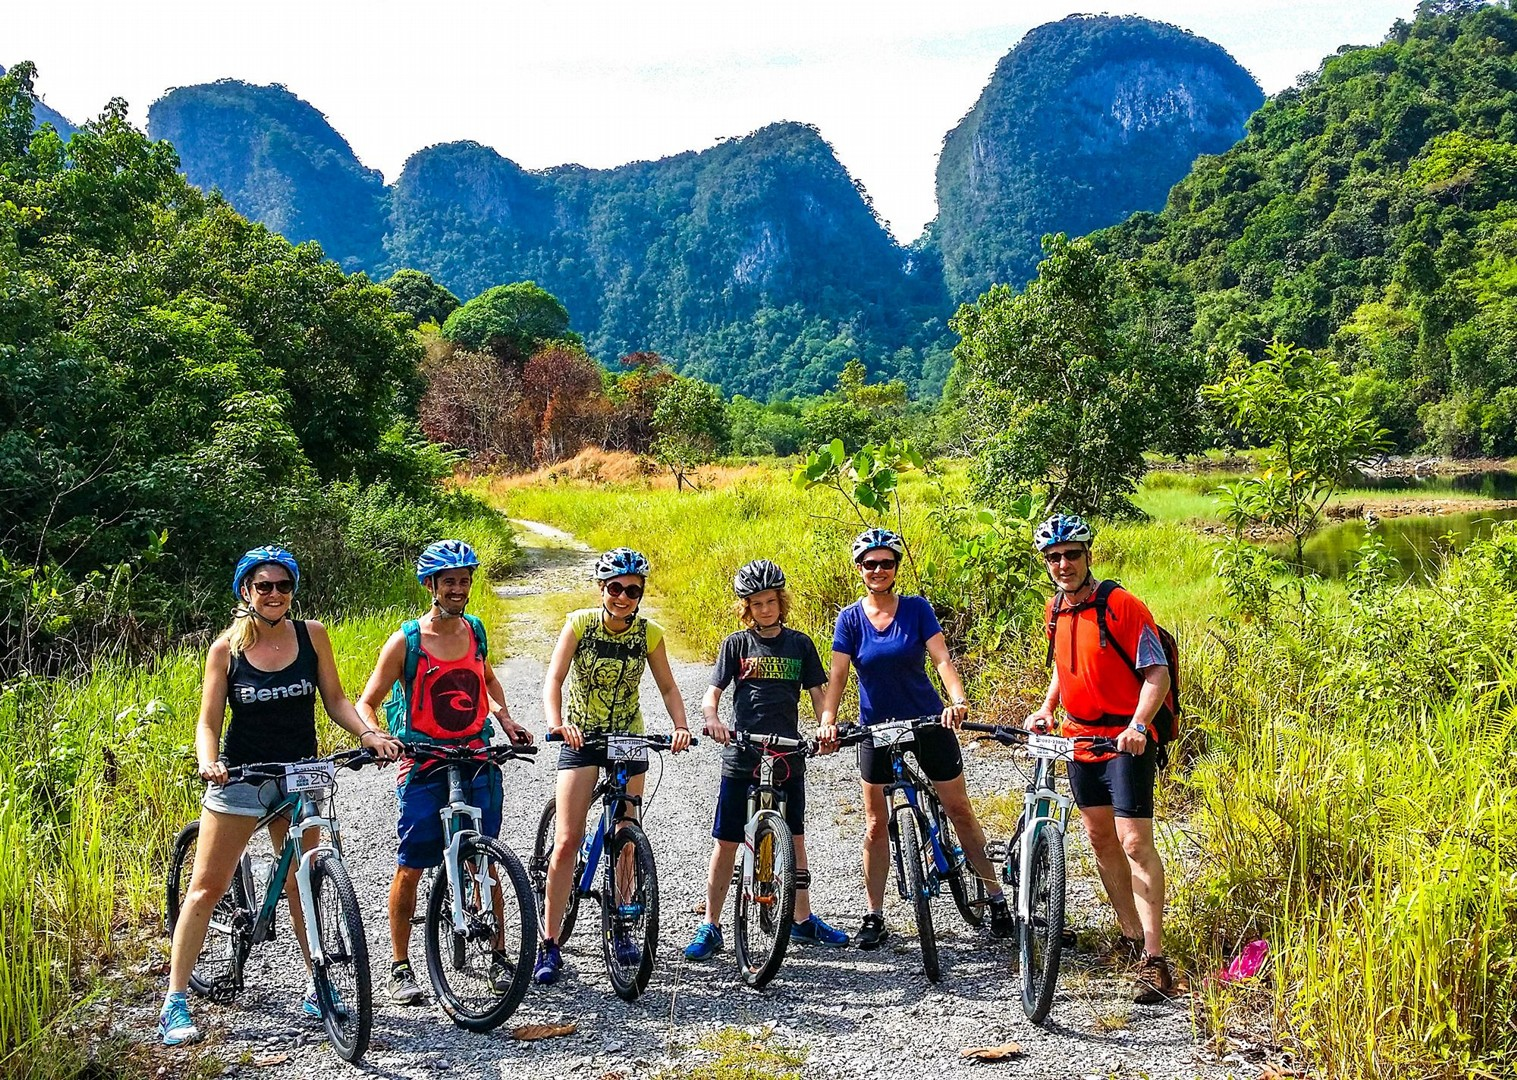 family-borneo-cycling-holiday-with-guides-long-haul.jpg - Borneo - Sarawak Jungle Adventures - Family Cycling